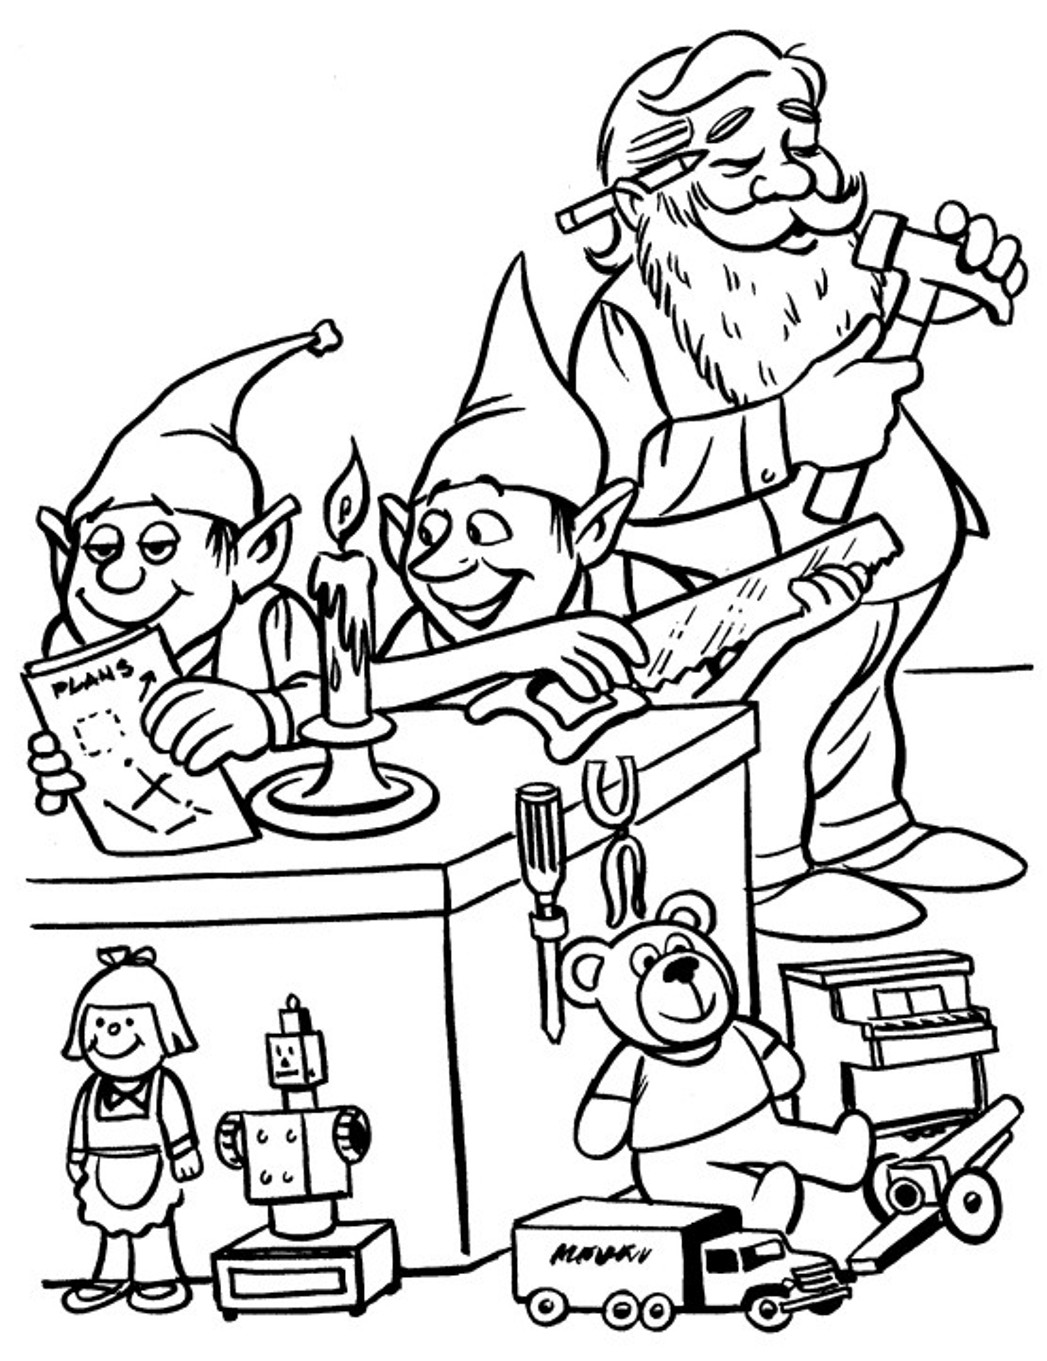 Santa On Rooftop Coloring Page With Free Father Christmas Pictures To Colour Download Clip Art